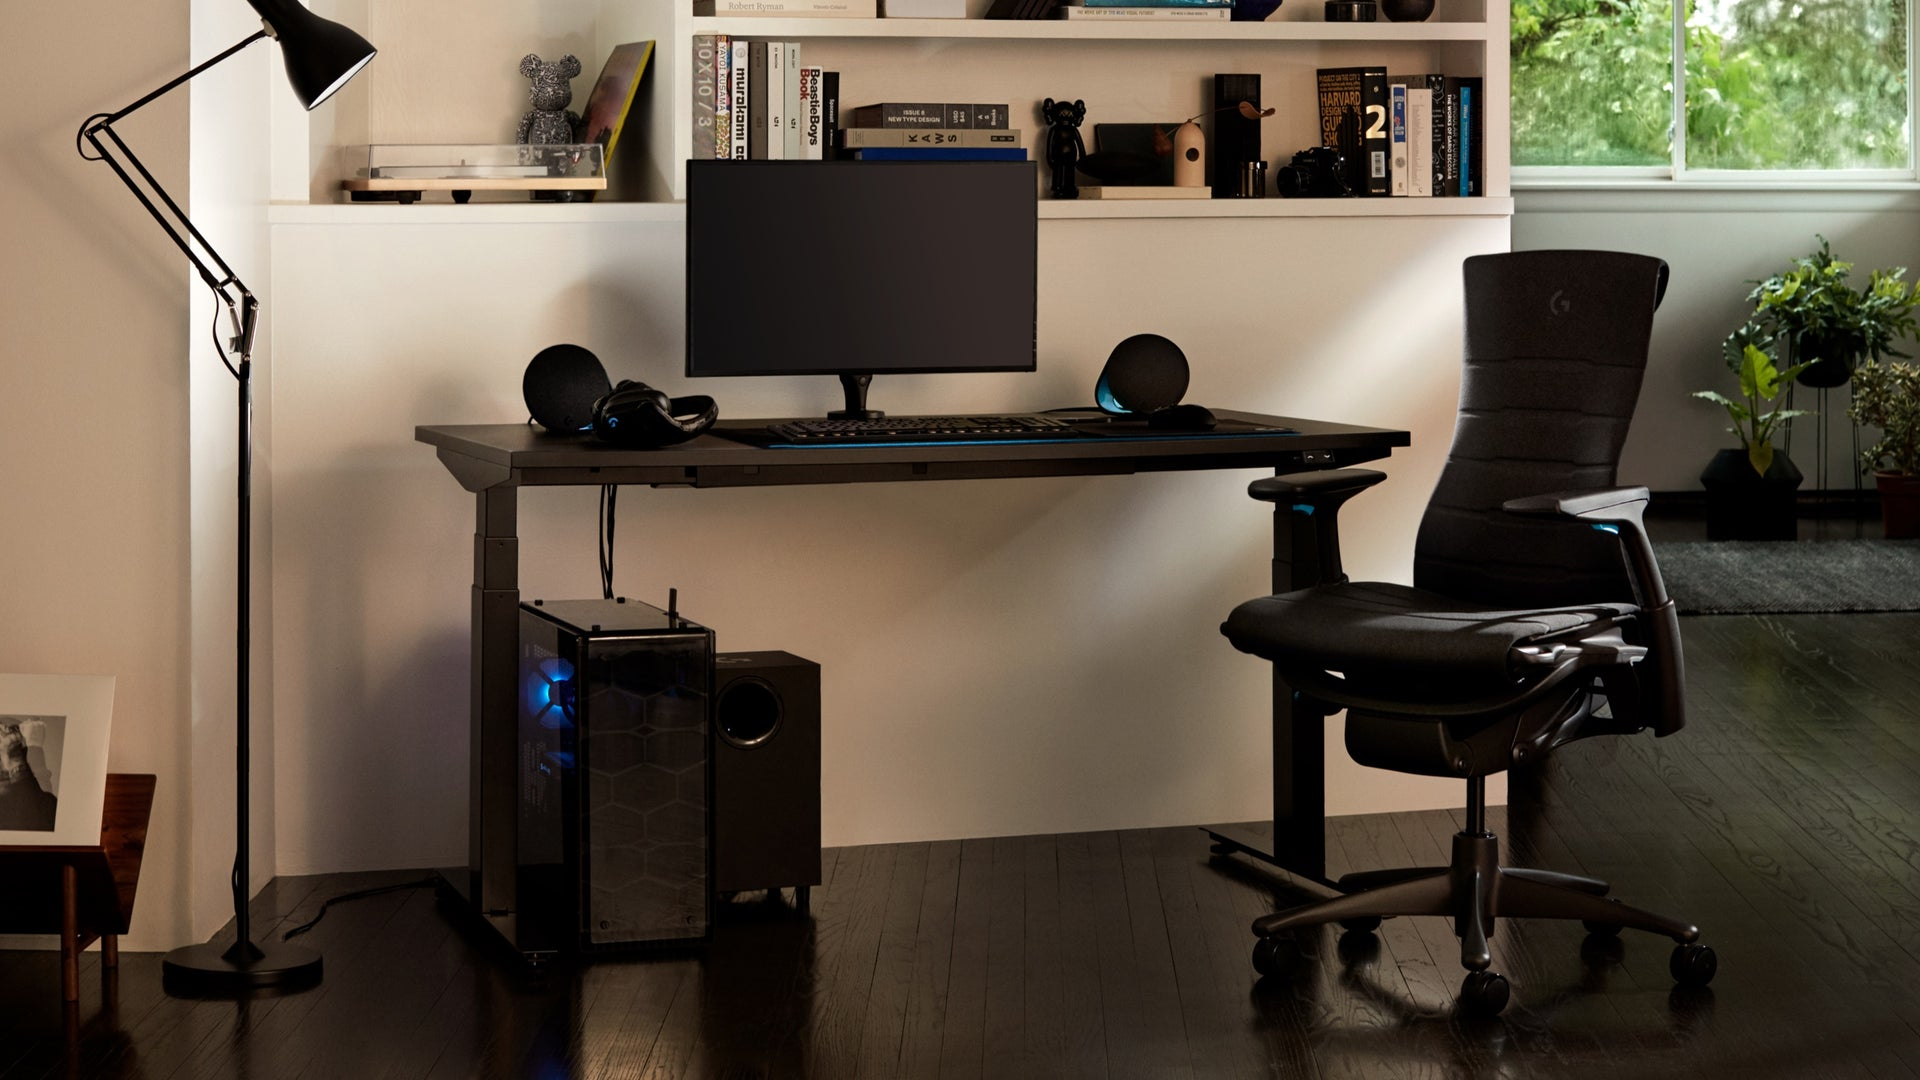 A residential setting features the full set-up, including the Embody Gaming Chair, Ollin Monitor Arm and Nevi Gaming Desk.